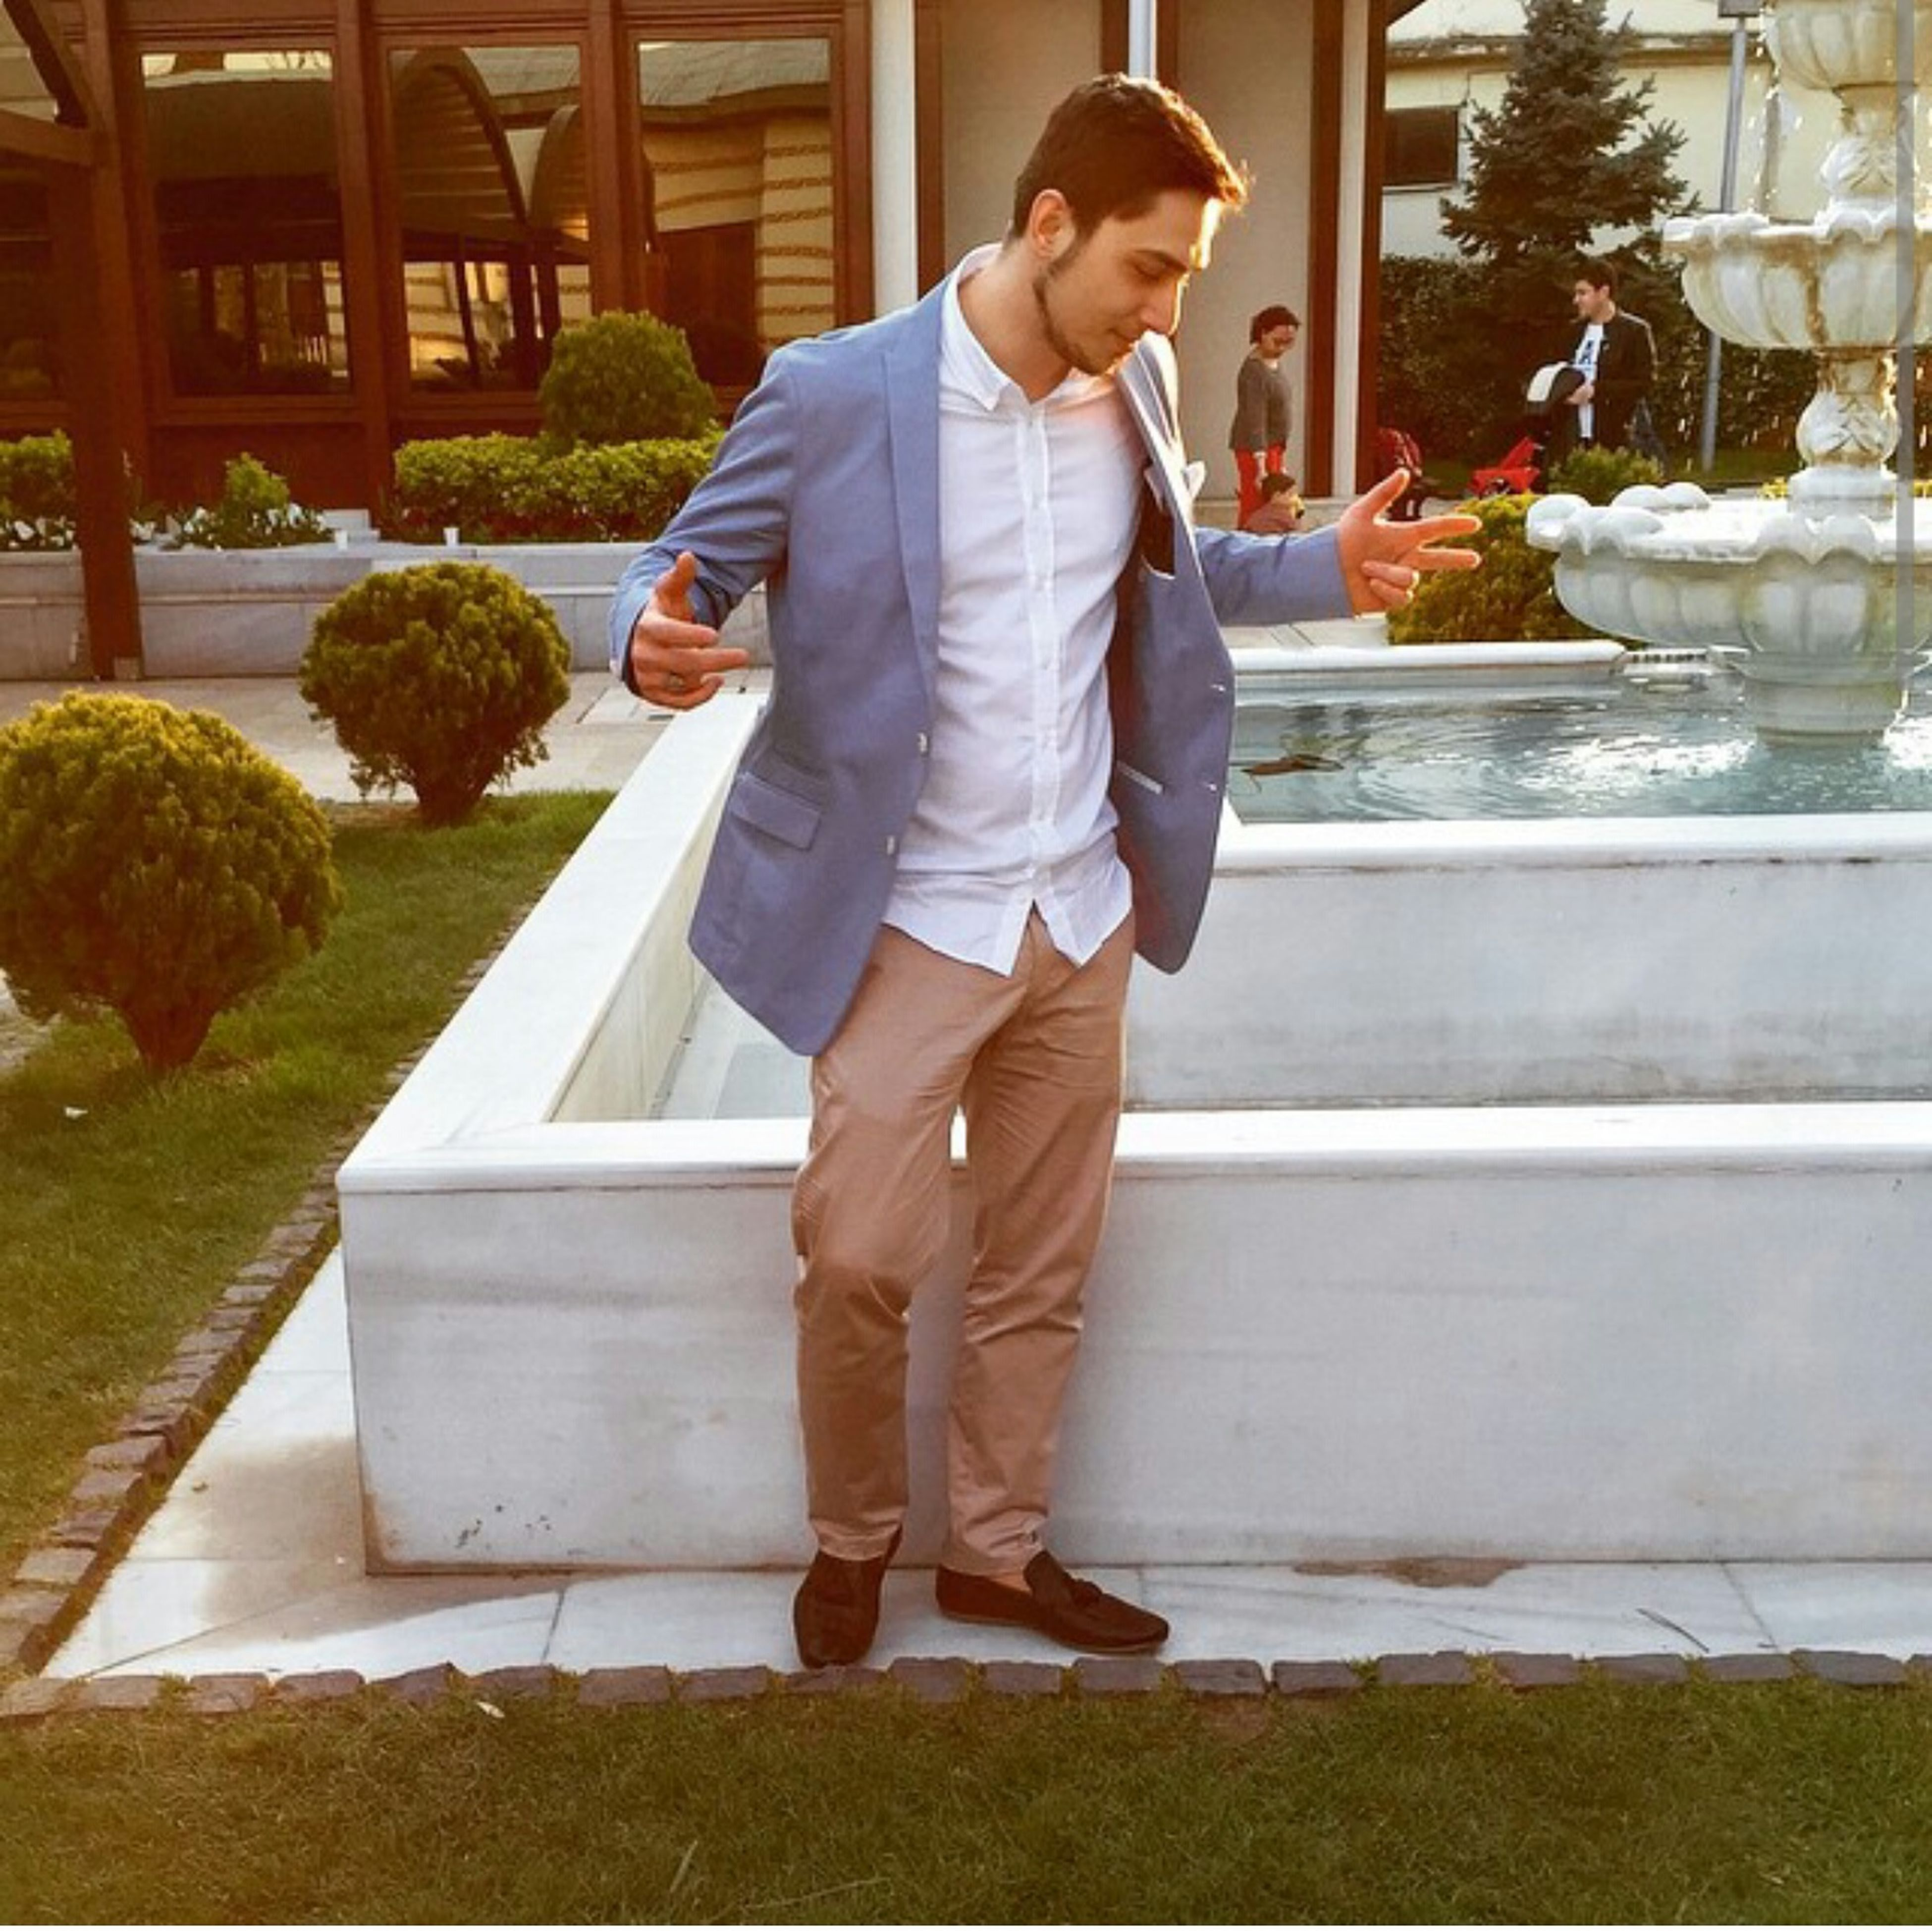 casual clothing, full length, standing, lifestyles, person, front view, built structure, architecture, leisure activity, building exterior, holding, three quarter length, young adult, window, childhood, front or back yard, elementary age, young men